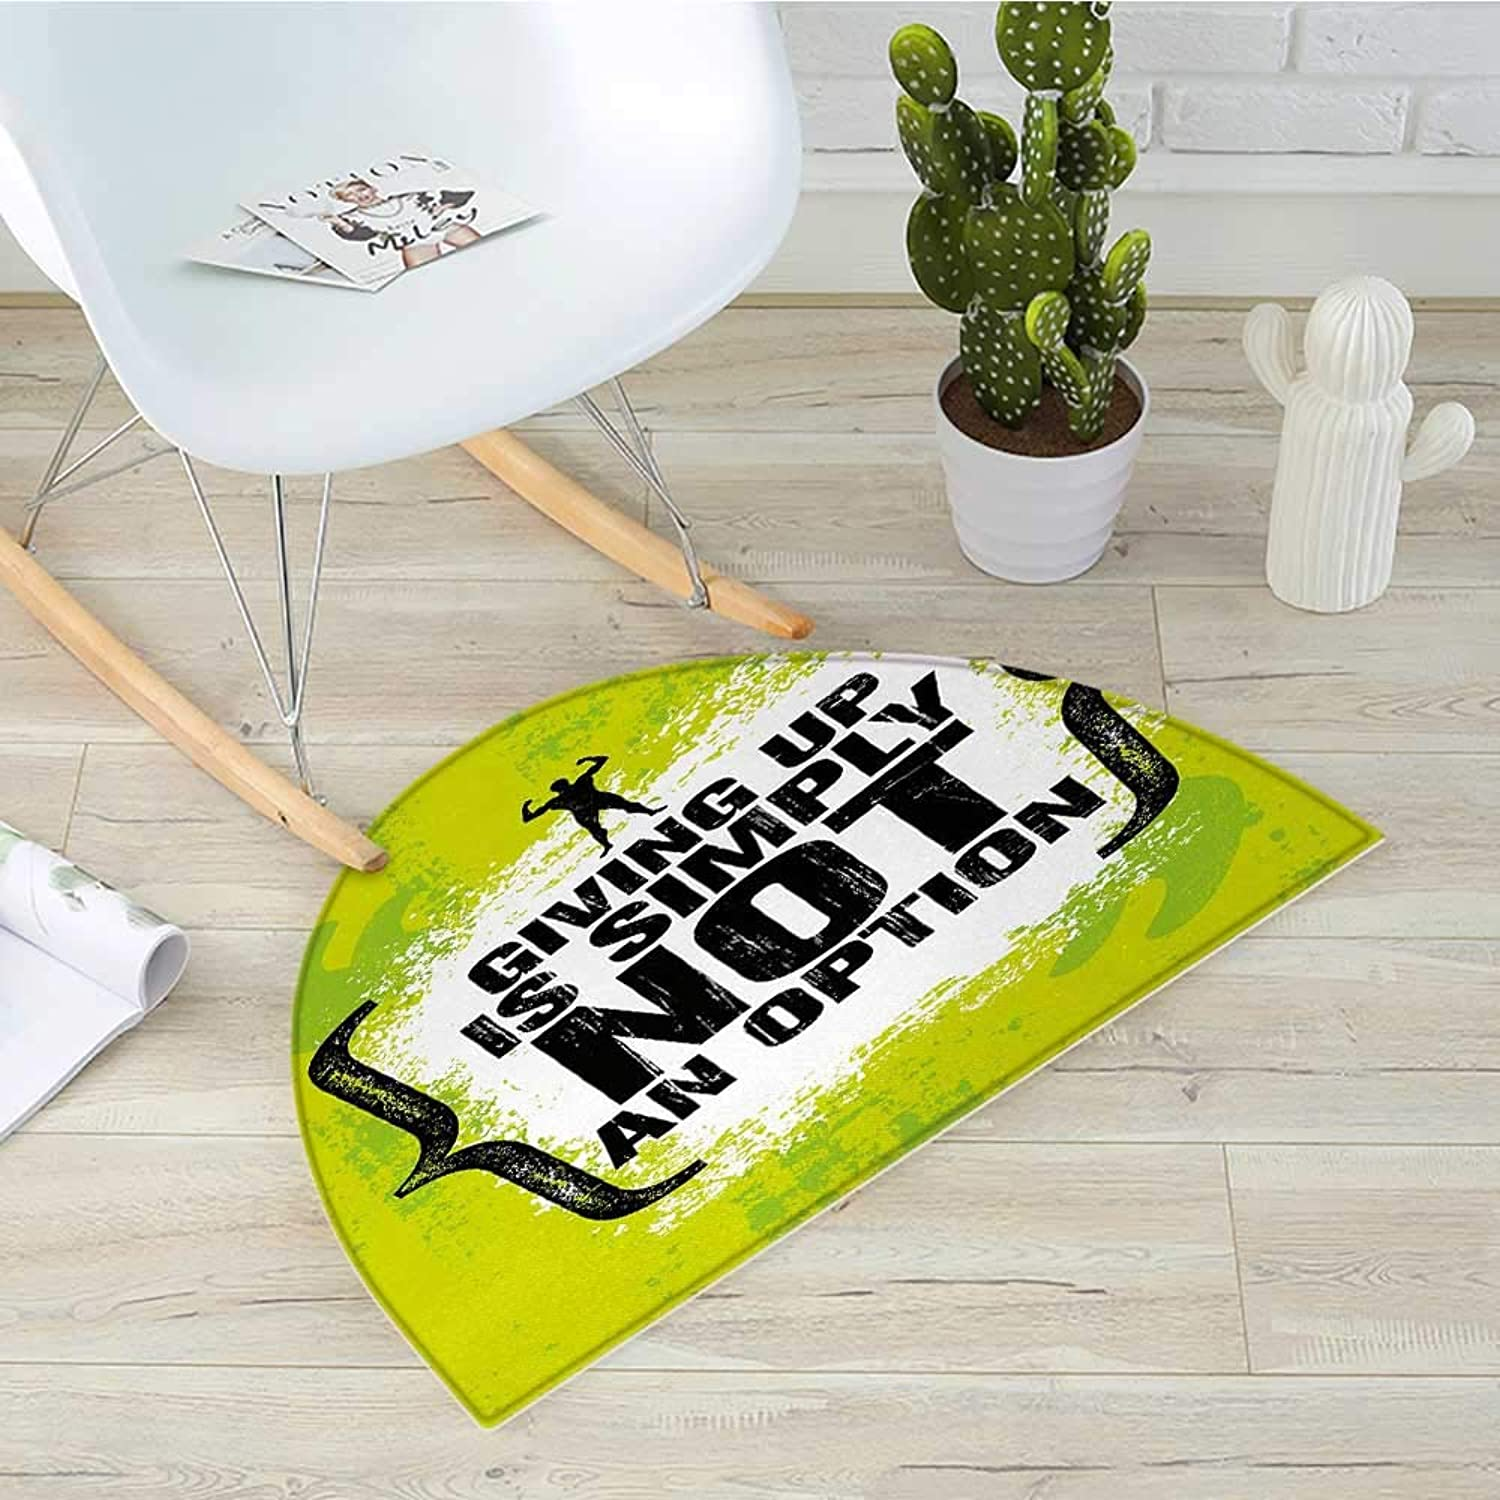 Fitness Semicircle Doormat Giving Up is Simply Not an Option with Muscular Champion Man Grunge Halfmoon doormats H 39.3  xD 59  Apple Green Black White